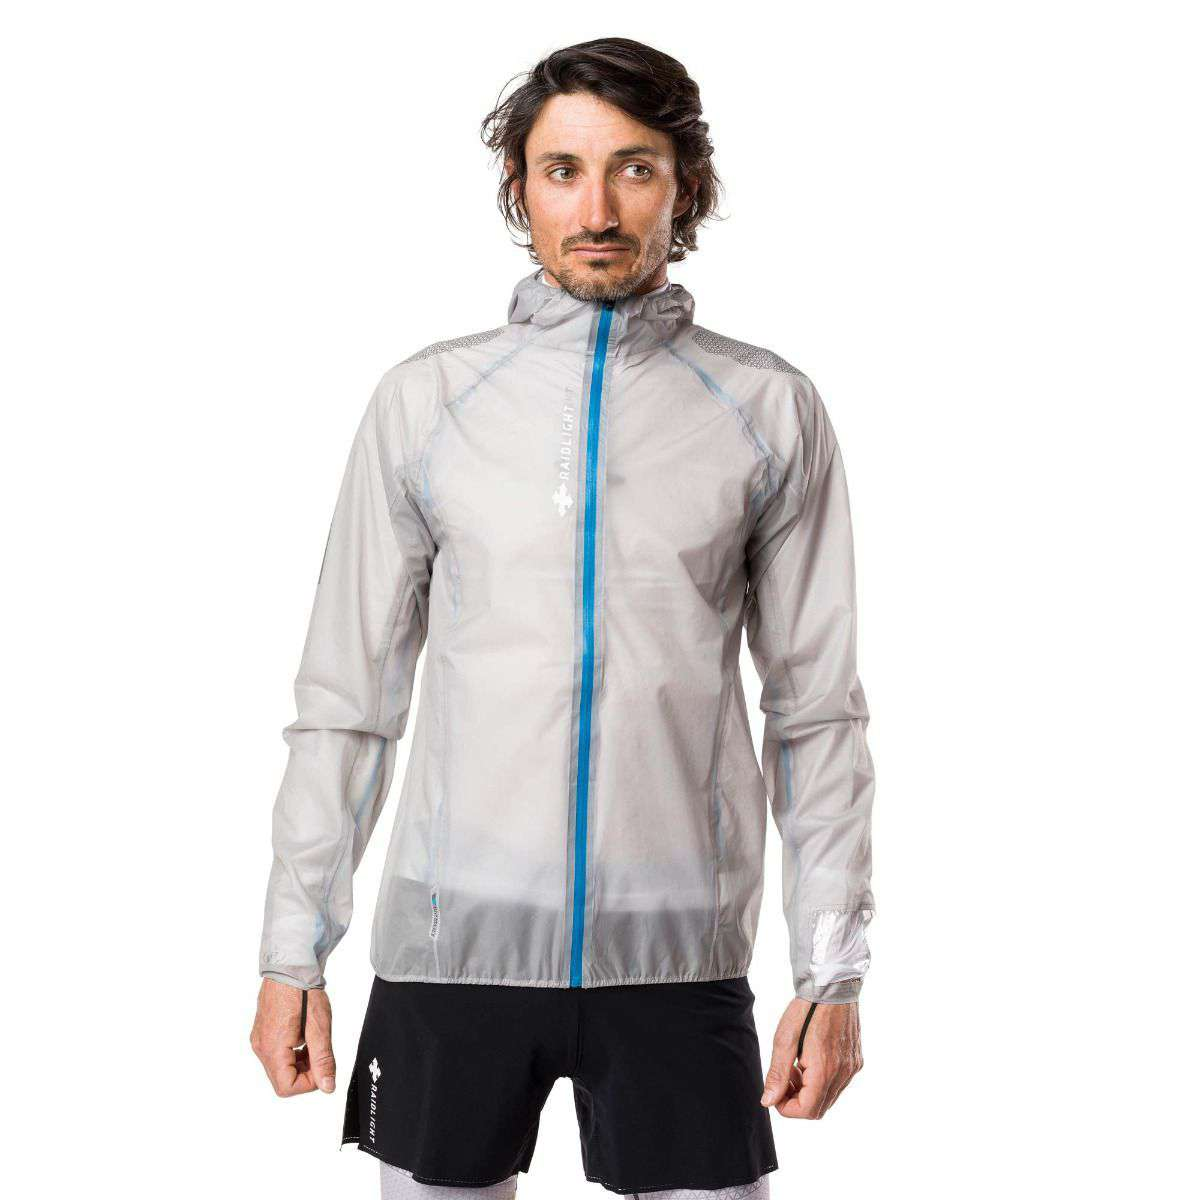 Men's HyperLight MP+ Waterproof Jacket Jacket- RaidLight